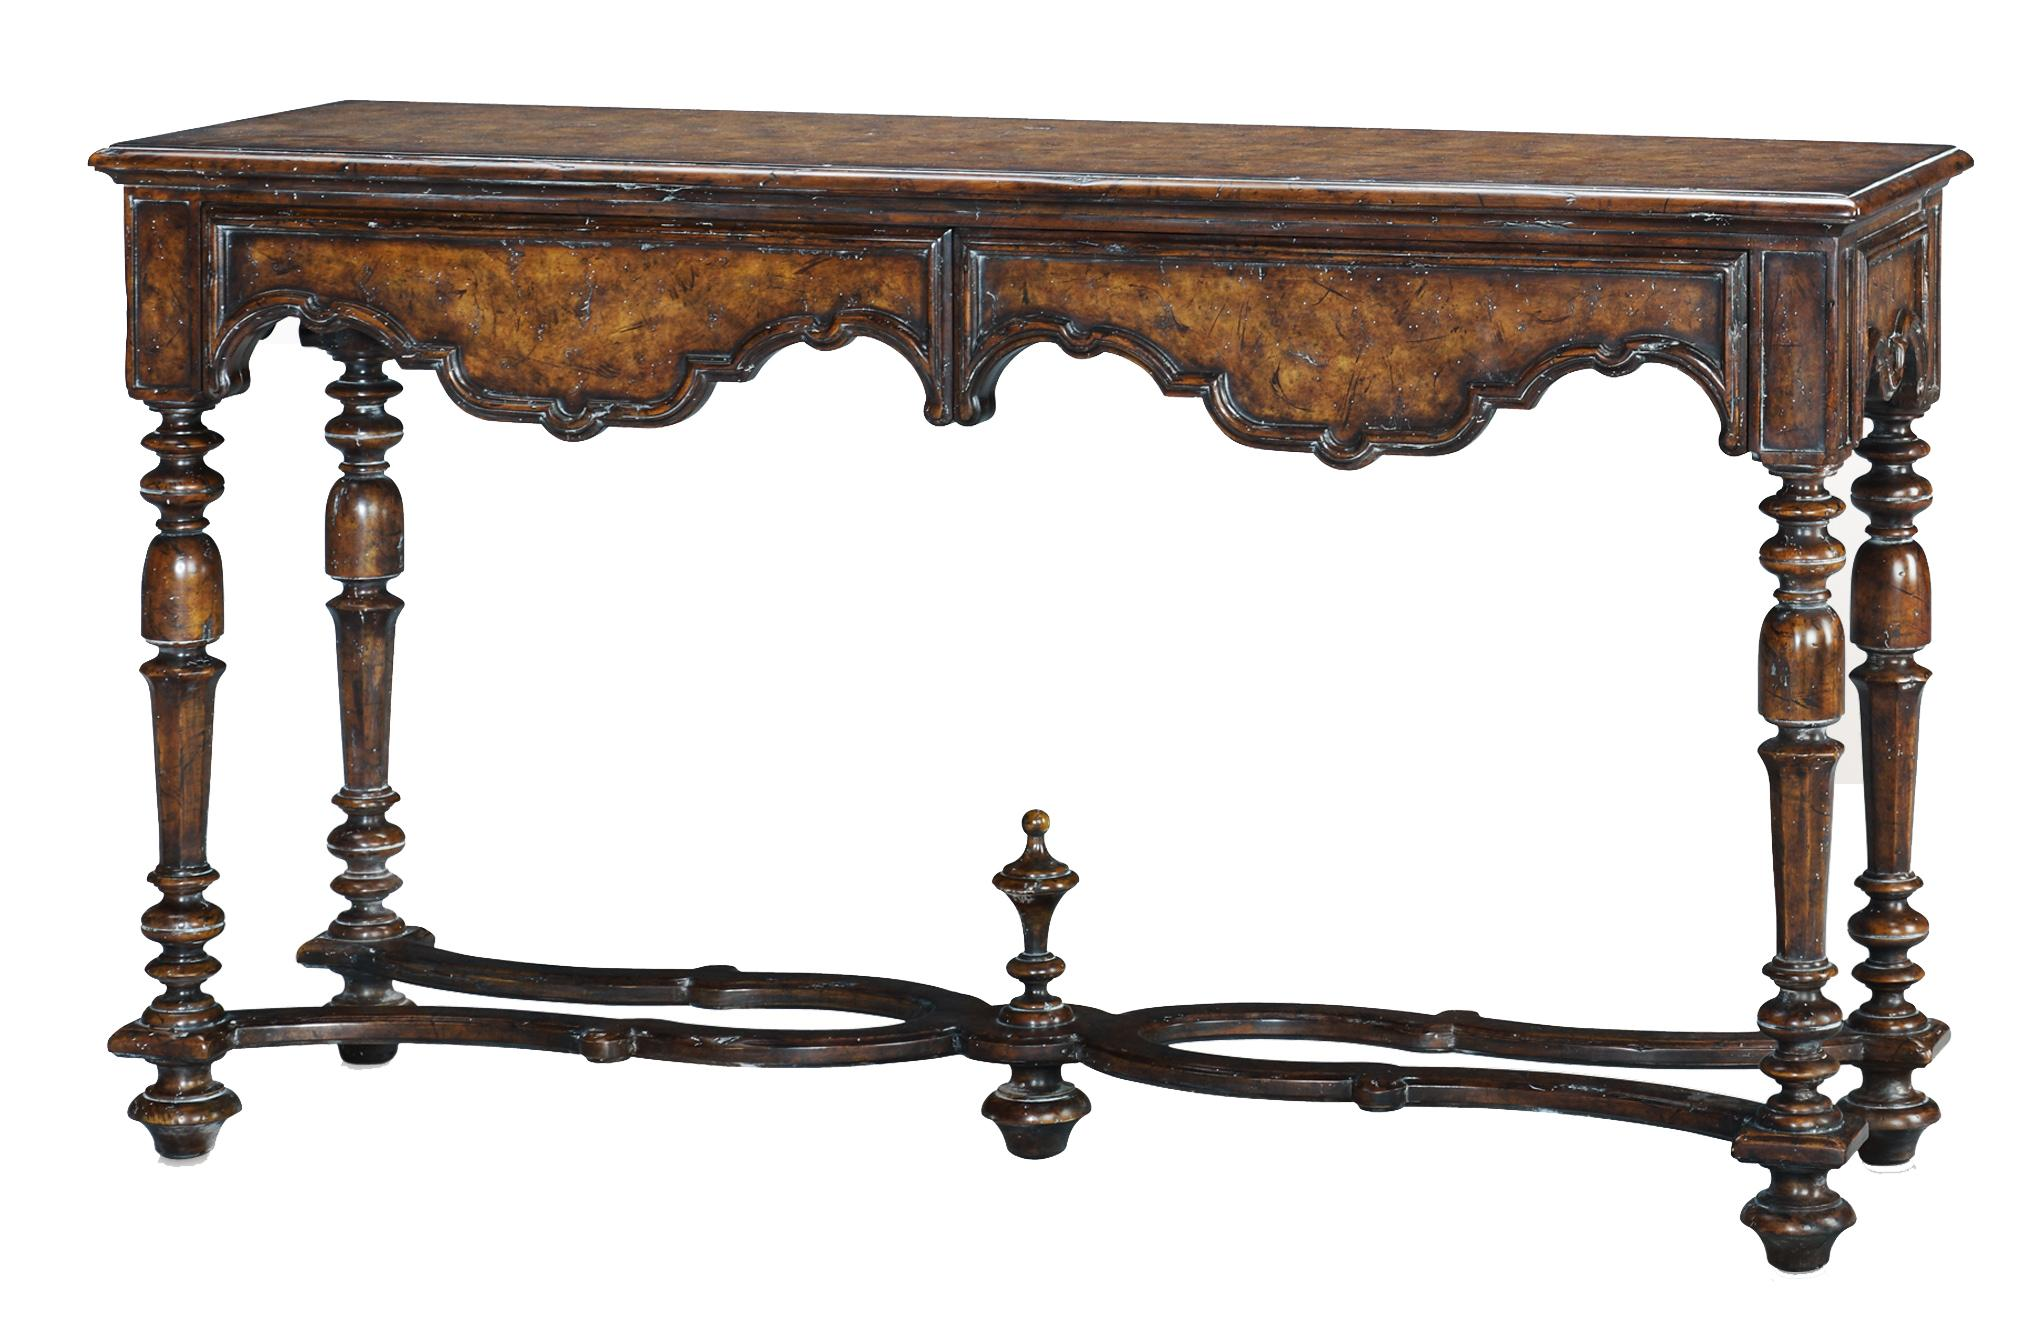 Classic yet Casual Italian Villa Console Table by Theodore Alexander at Baer's Furniture